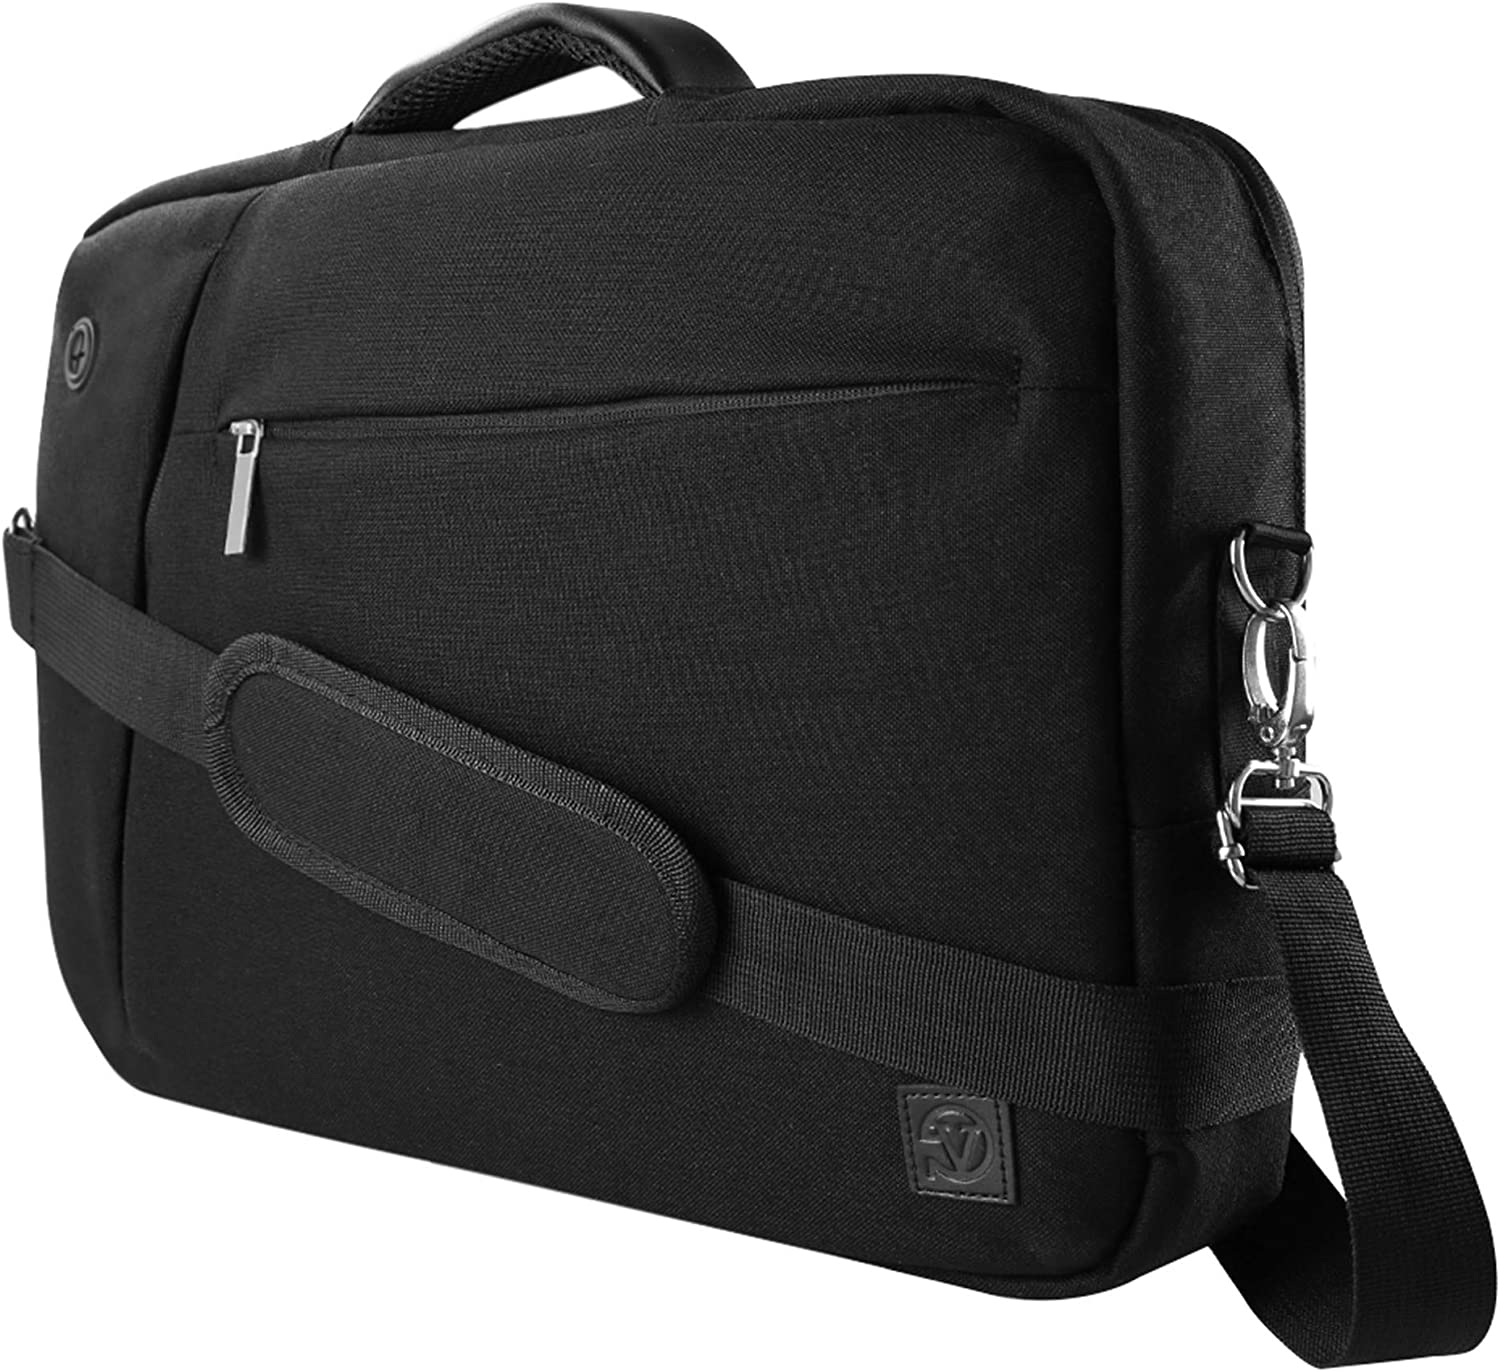 Professional Laptop Backpack Business Anti Theft Computer Bag for Acer Aspire 5, Aspire 7, Aspire E, Black